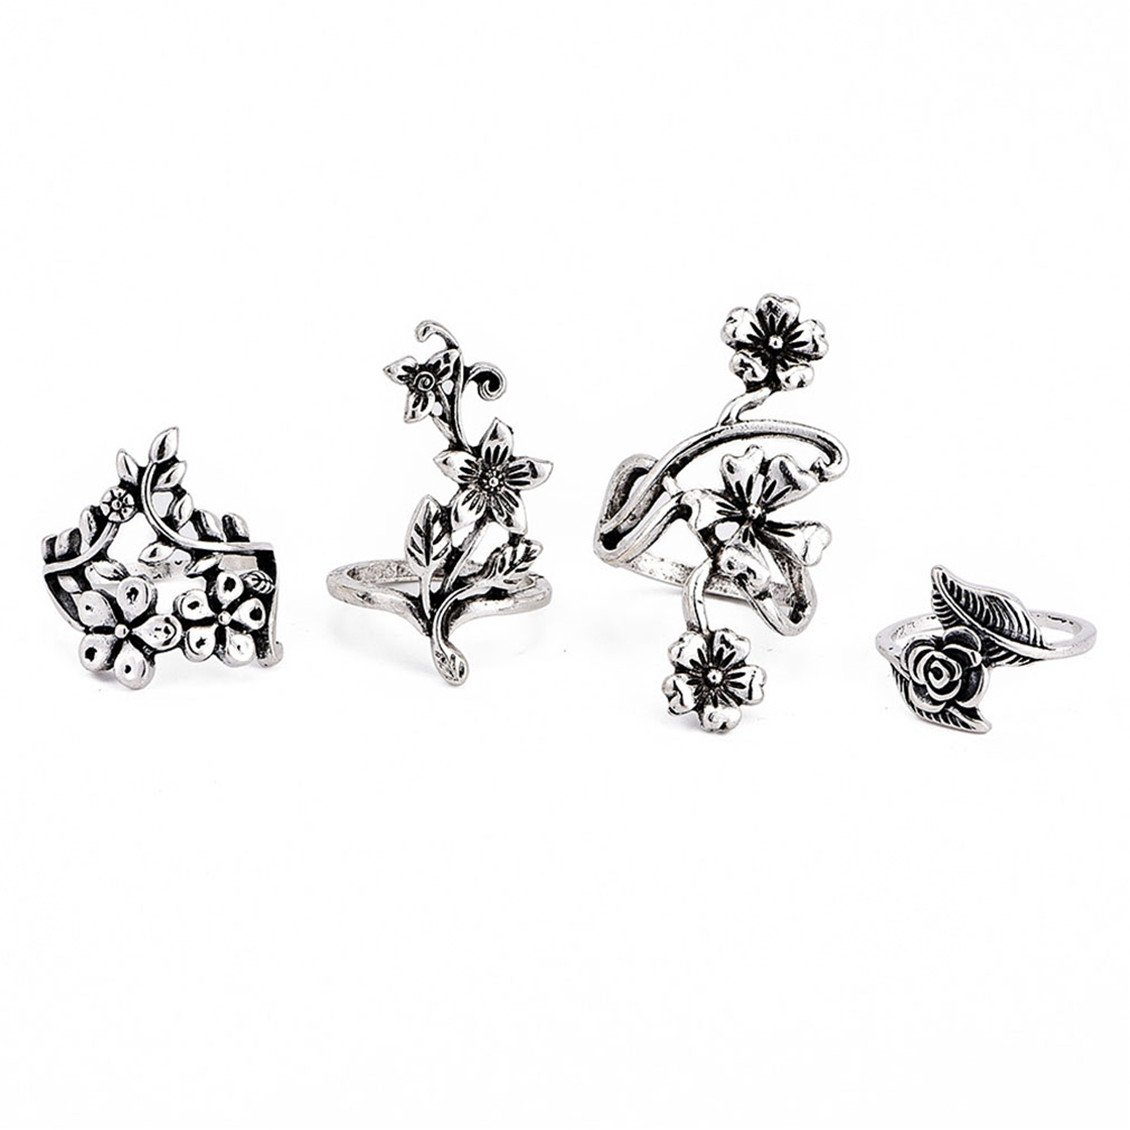 Dolland Vintage Knuckle Ring Set Rhinestone Joint Knuckle Nail Ring Set